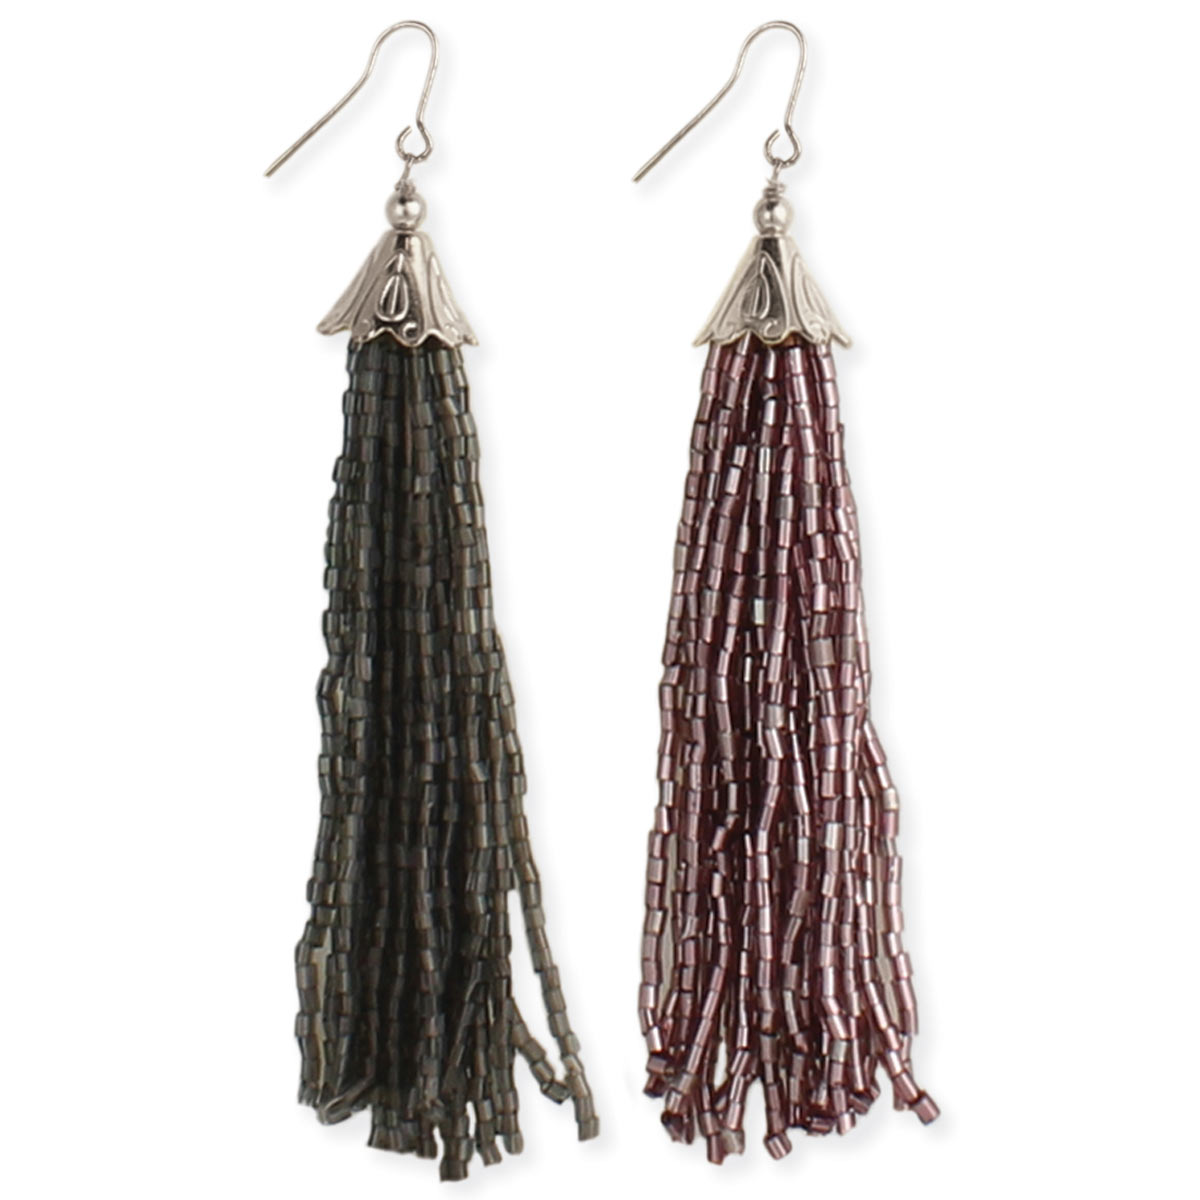 Beaded Long Tassel Earrings